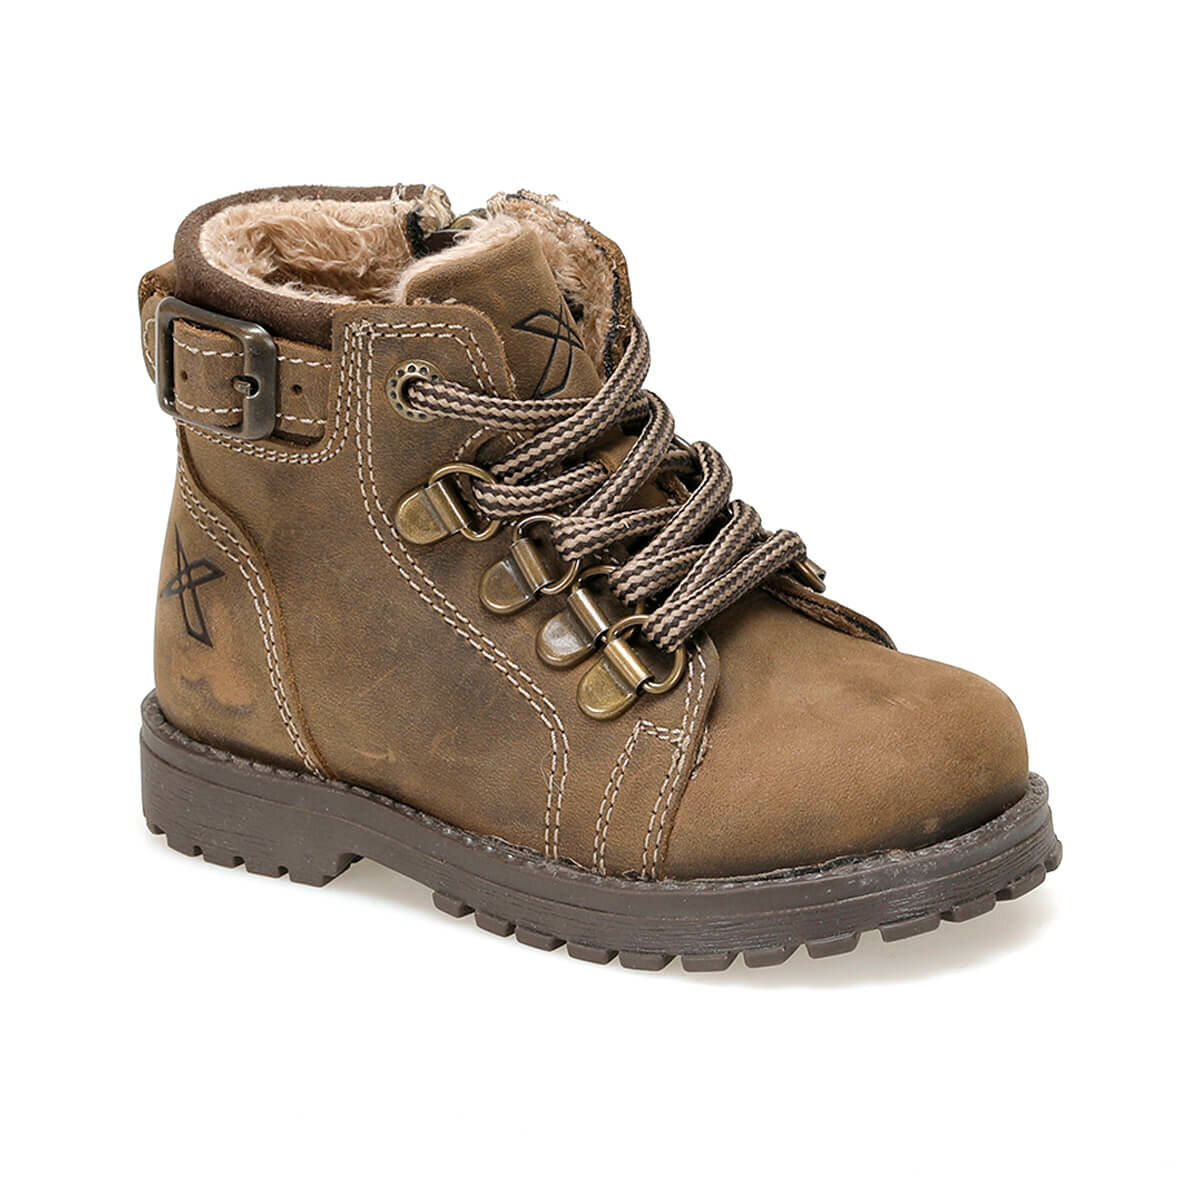 FLO SARDONE LEATHER 9PR Sand Color Male Child Boots KINETIX